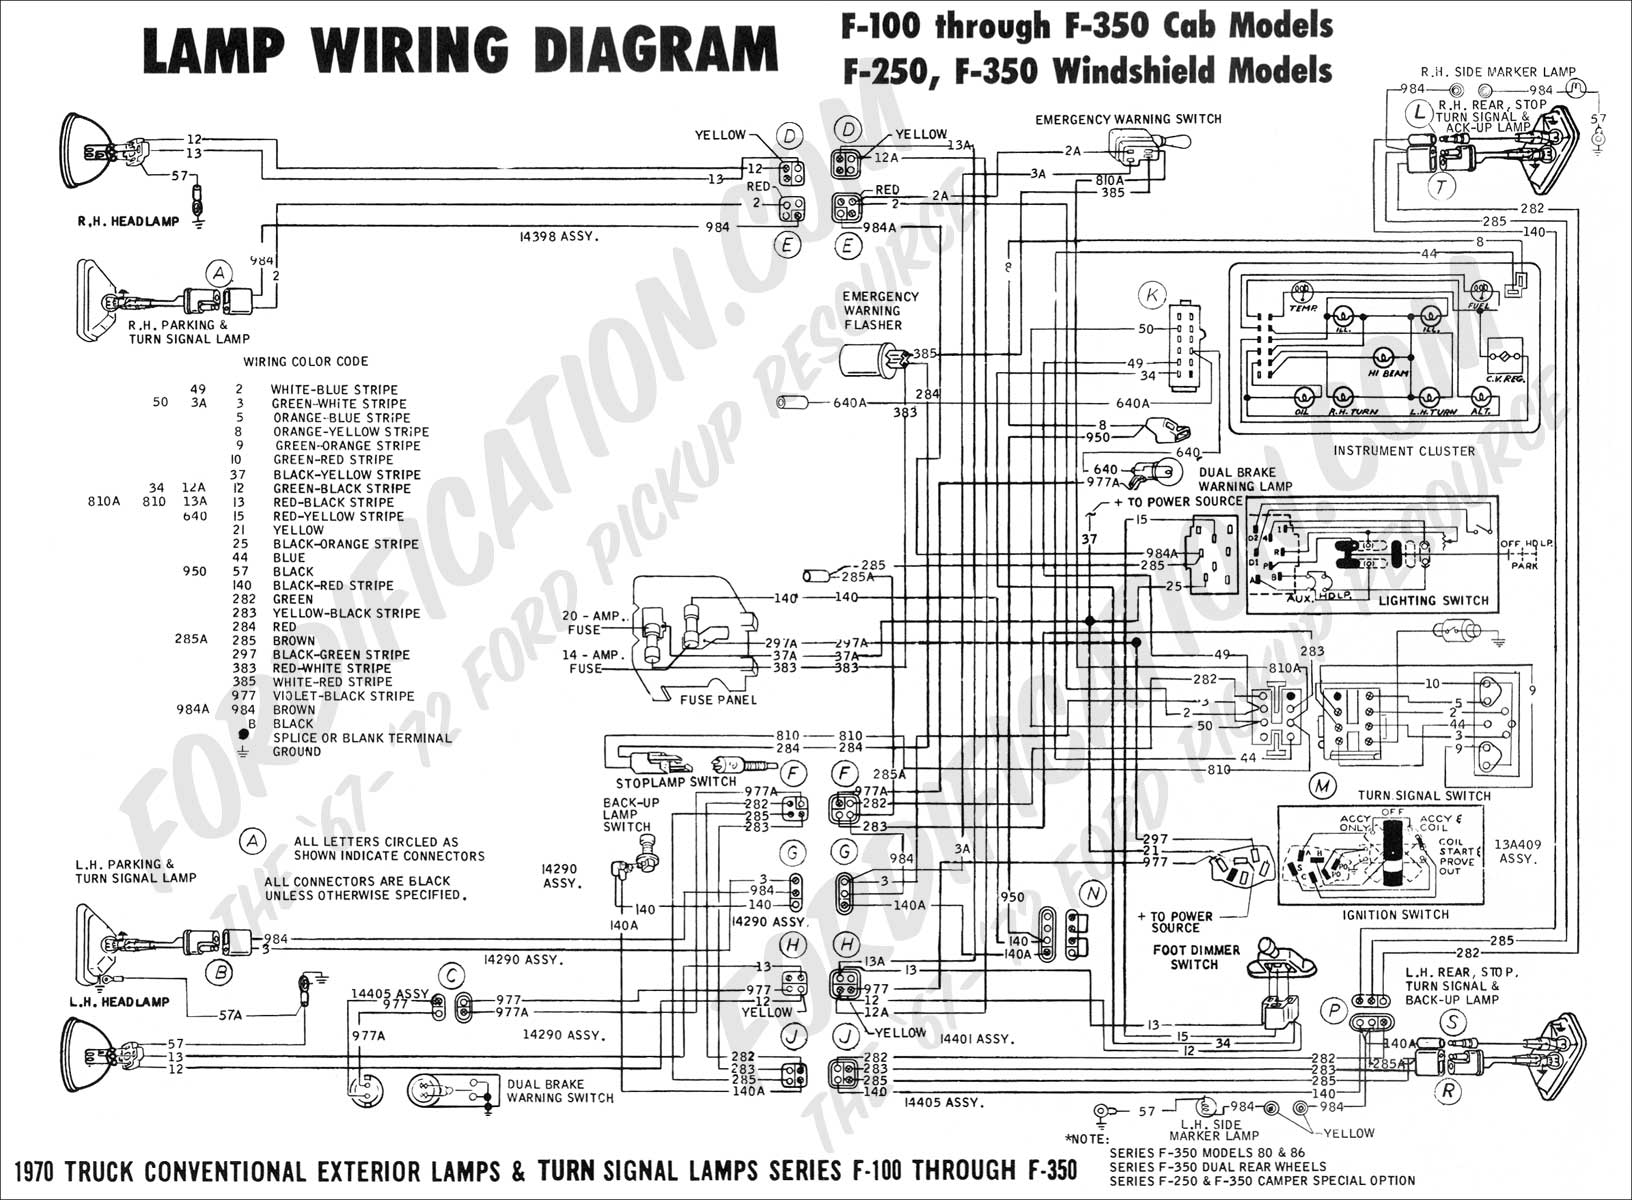 wiring diagram 1970 ford f 250 diagram base website f 250 ...  diagram base website full edition - jana-pinka.de